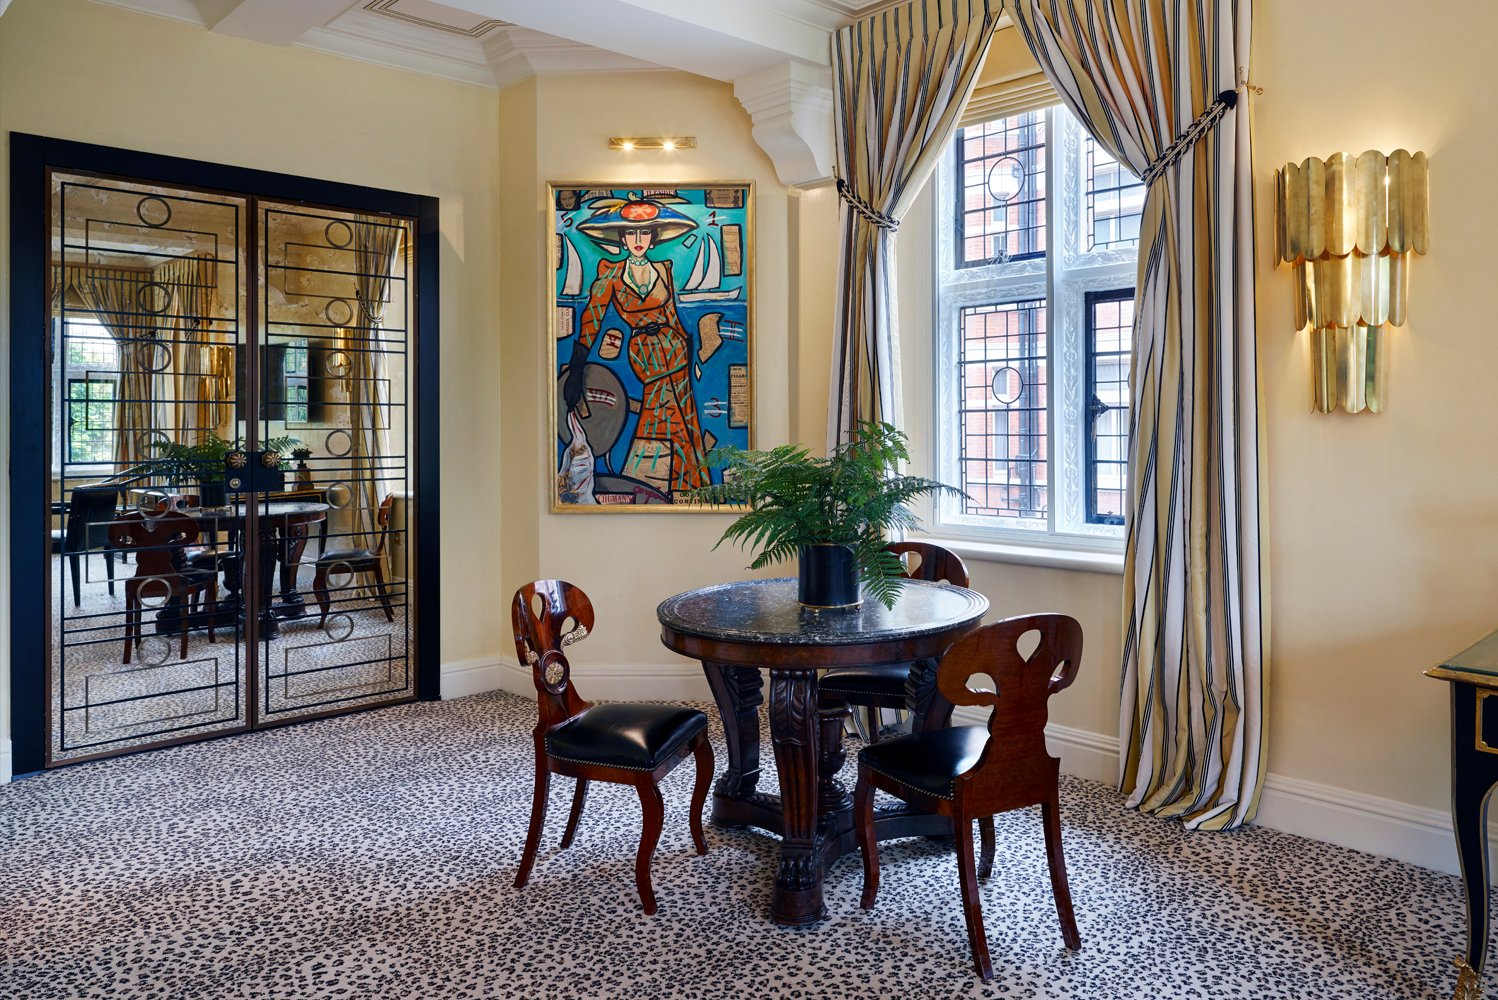 The design team was led by property owner Beatrice Tollman, along with her daughter, Toni.